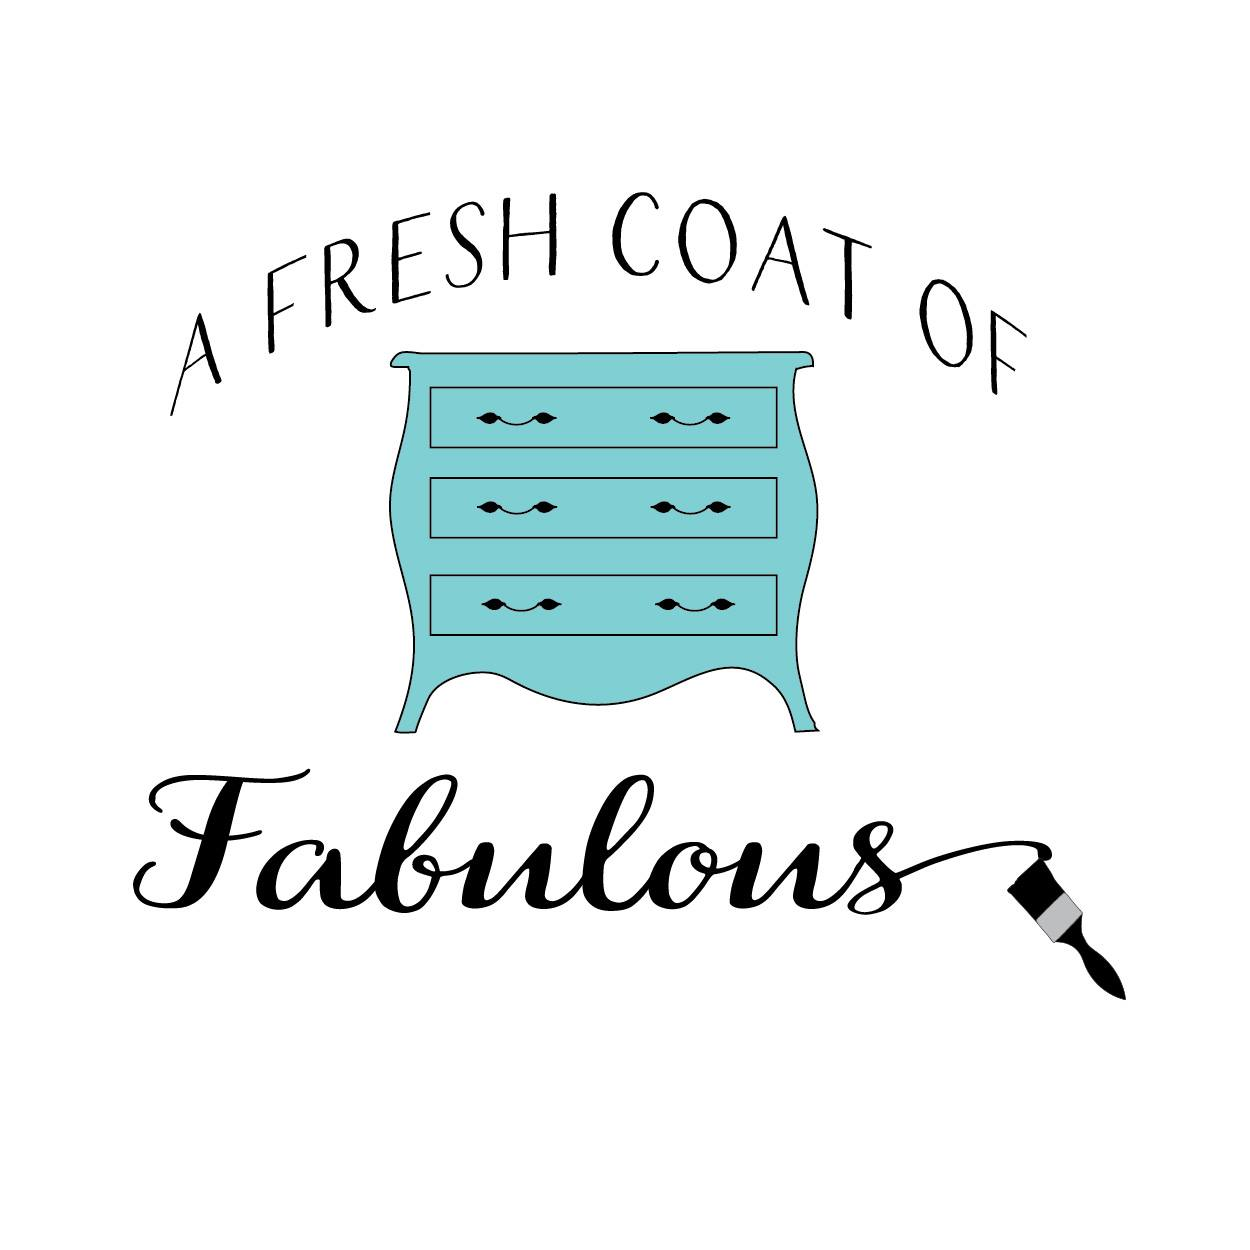 A Fresh Coat of Fabulous